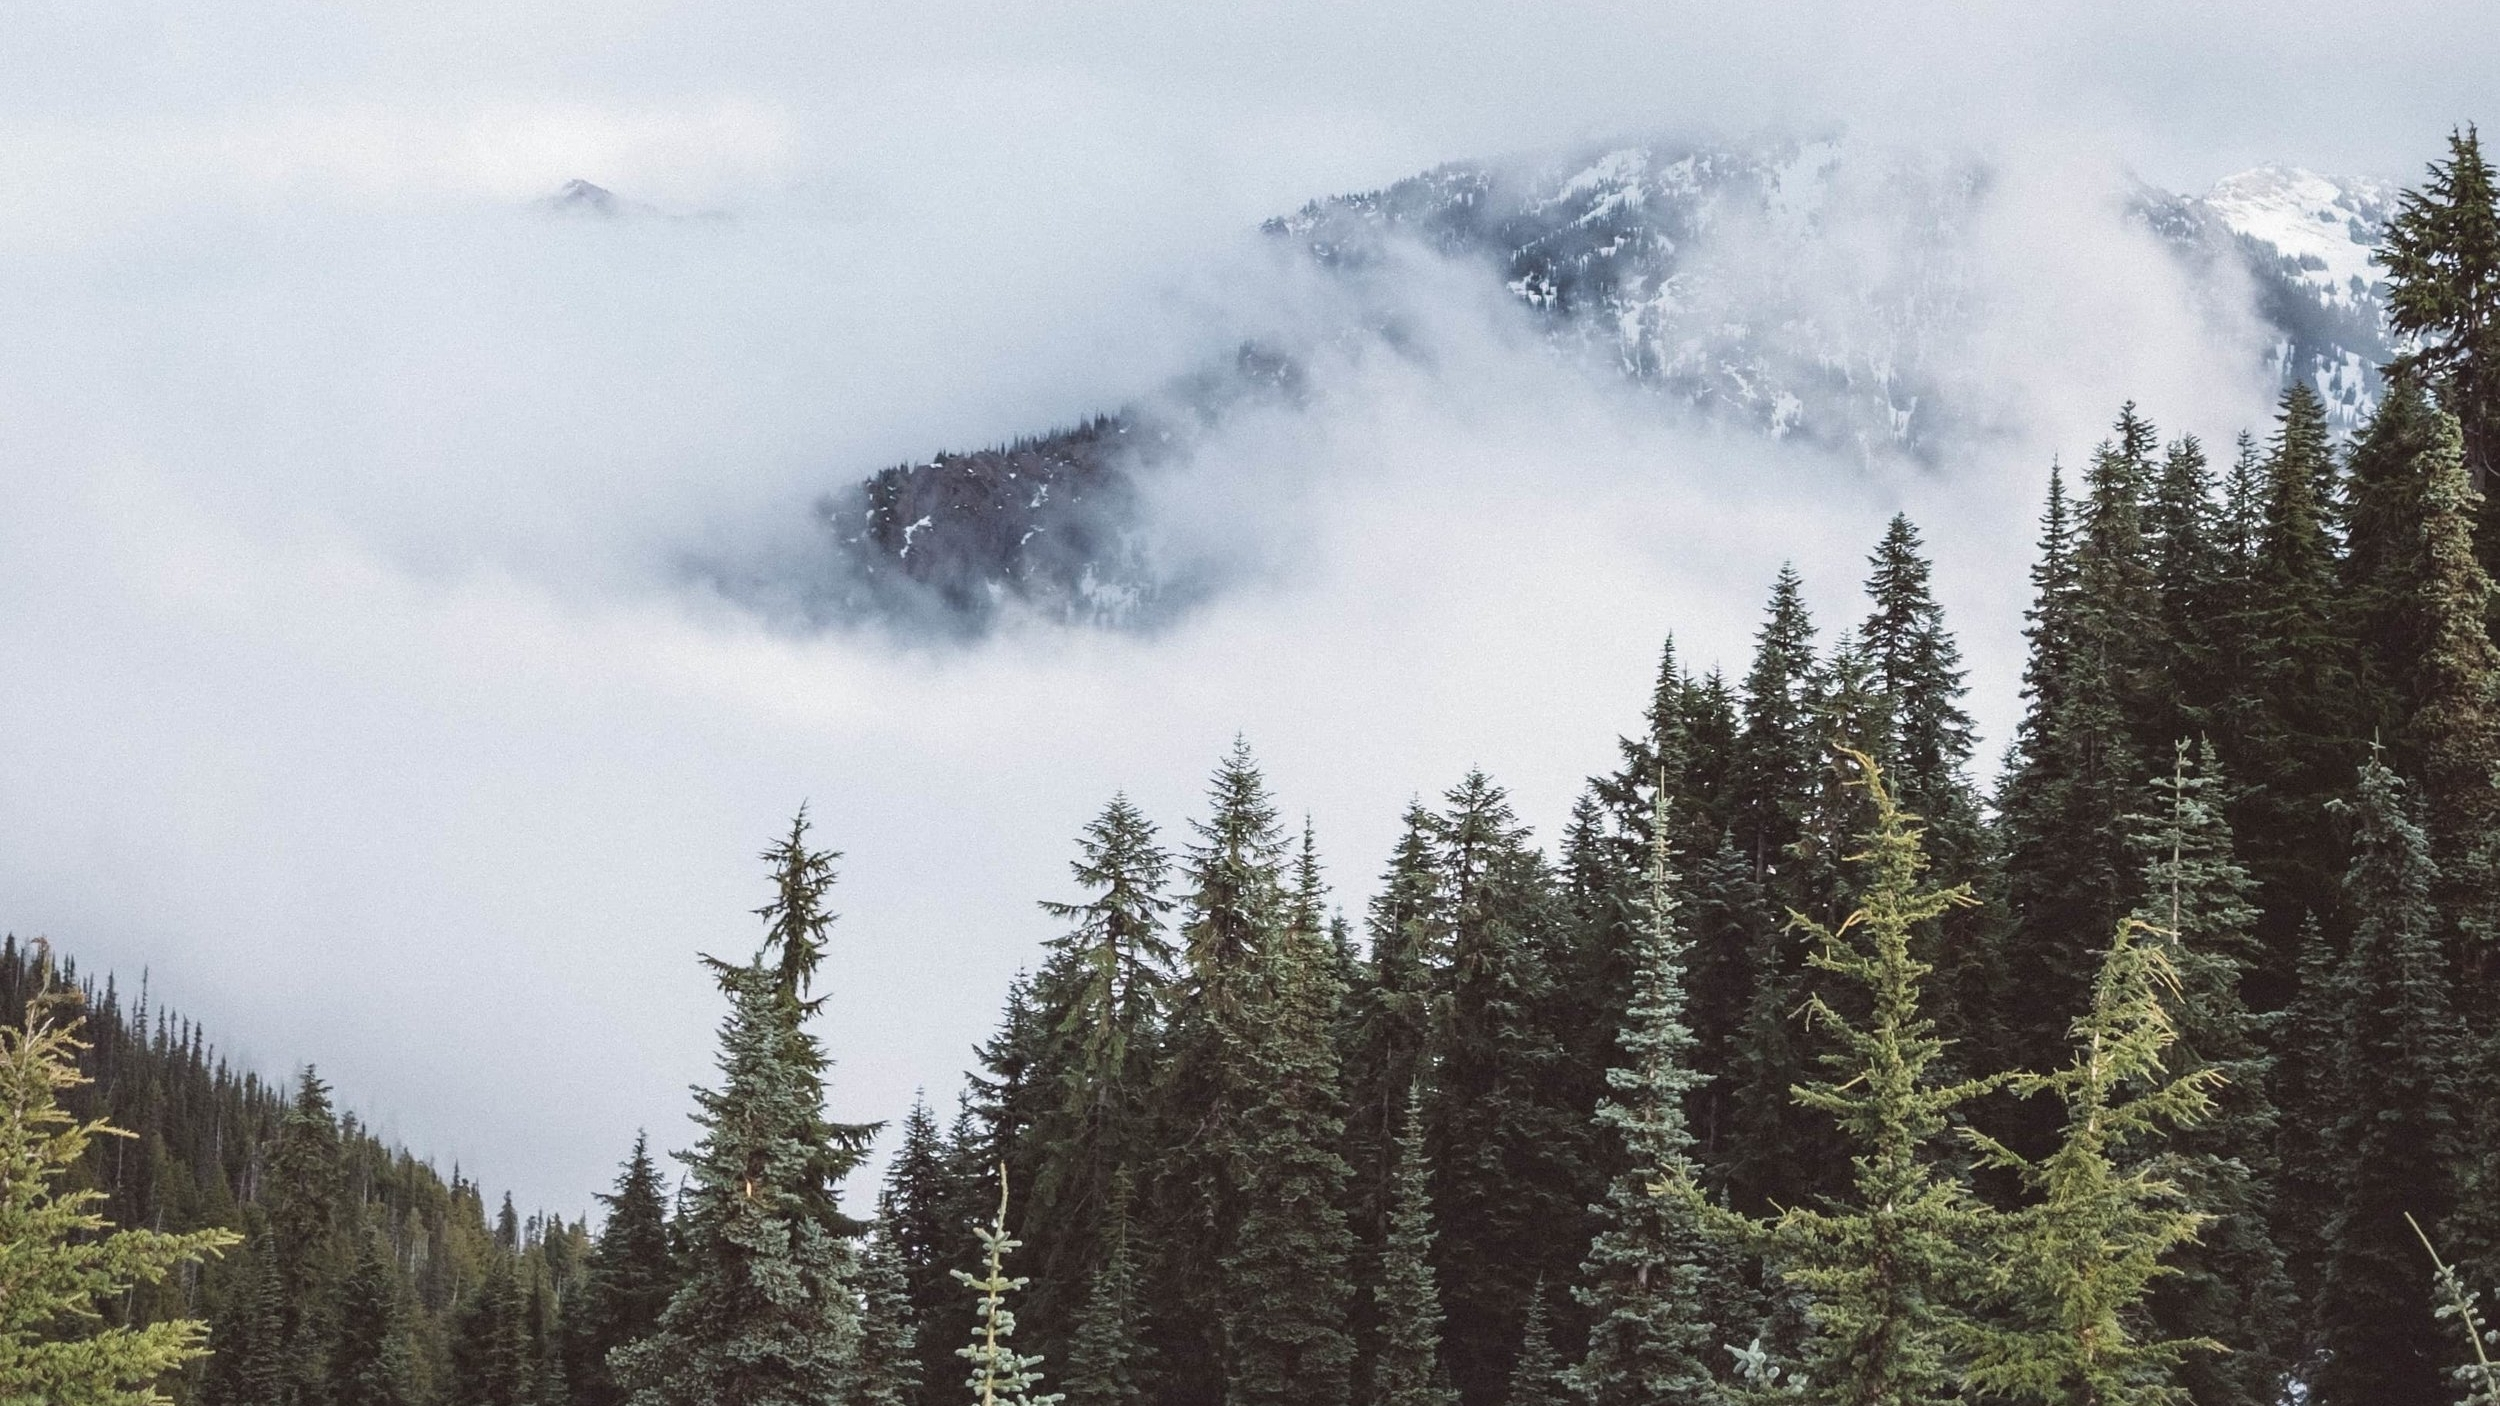 Mountain-in-the-clouds-image - .jpg